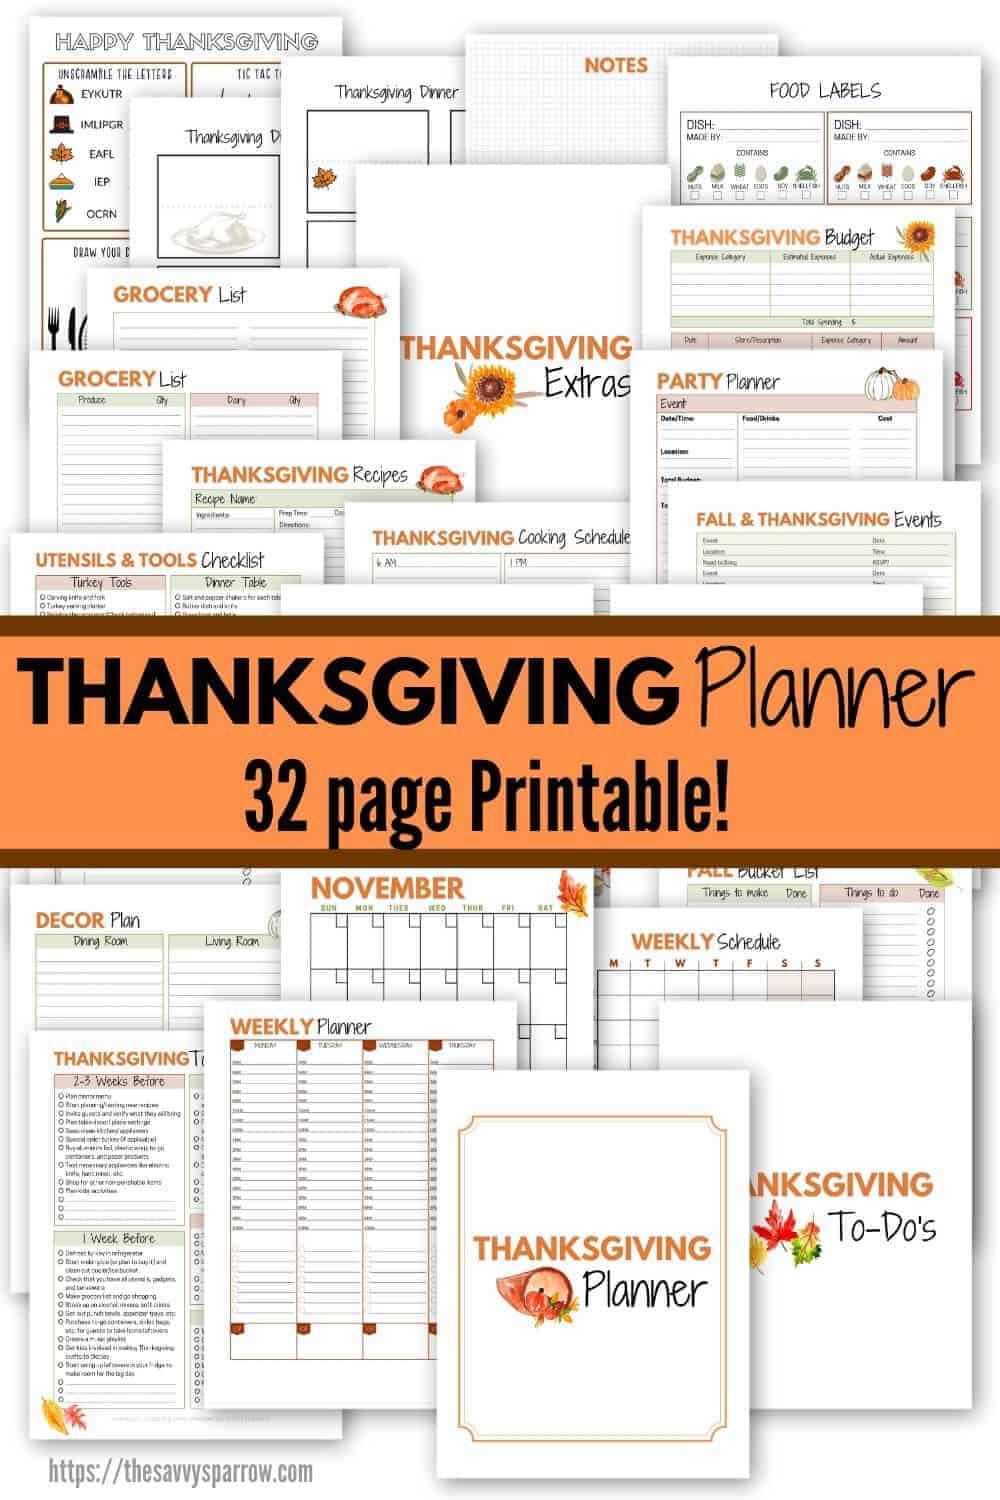 collage showing different pages of printable Thanksgiving planner